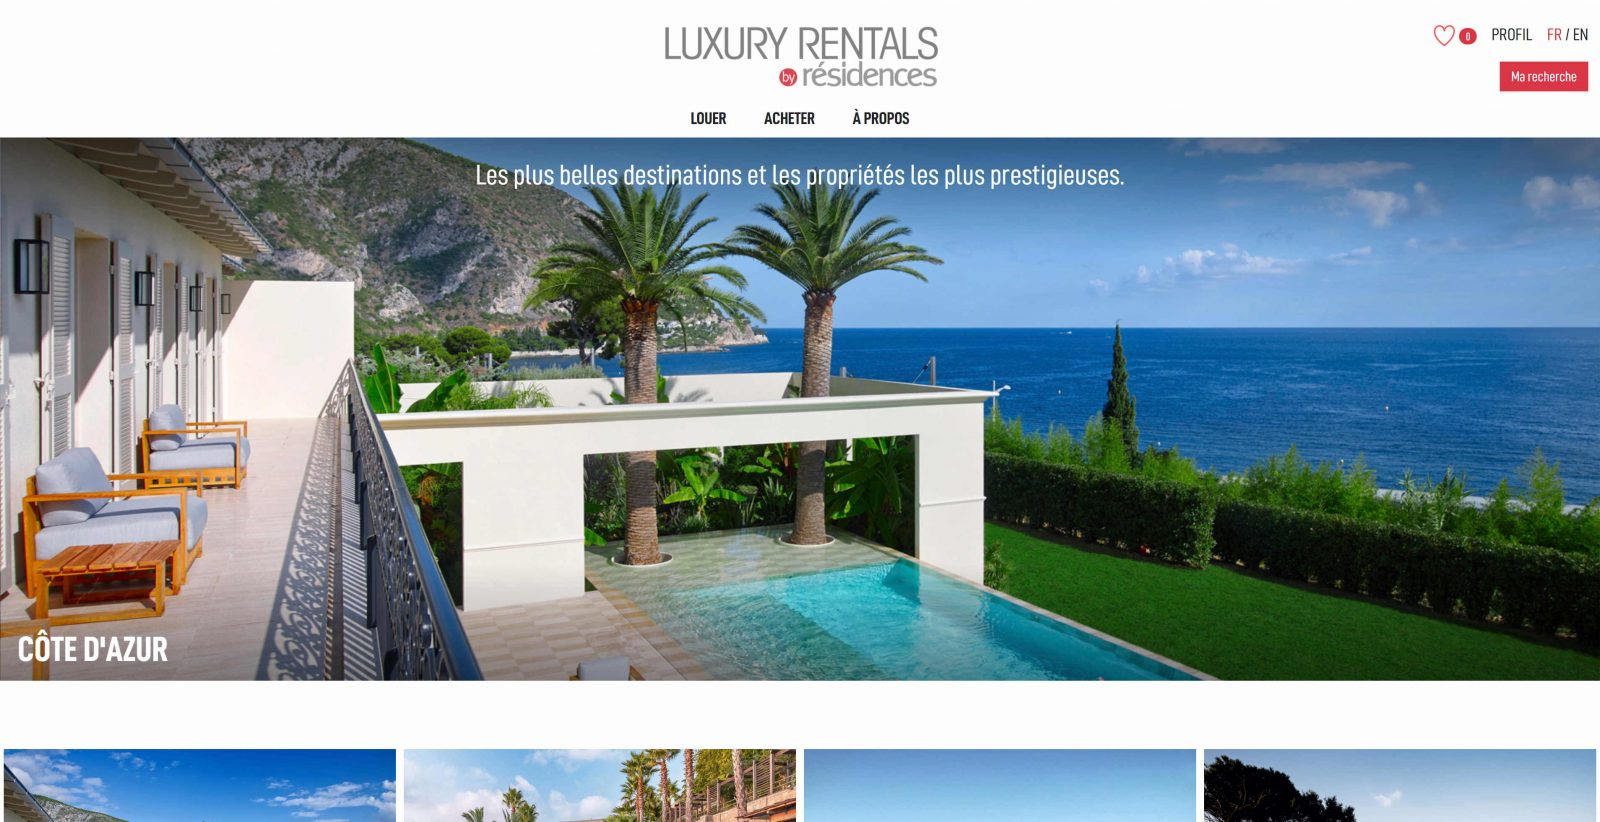 Luxury Rentals By Résidences